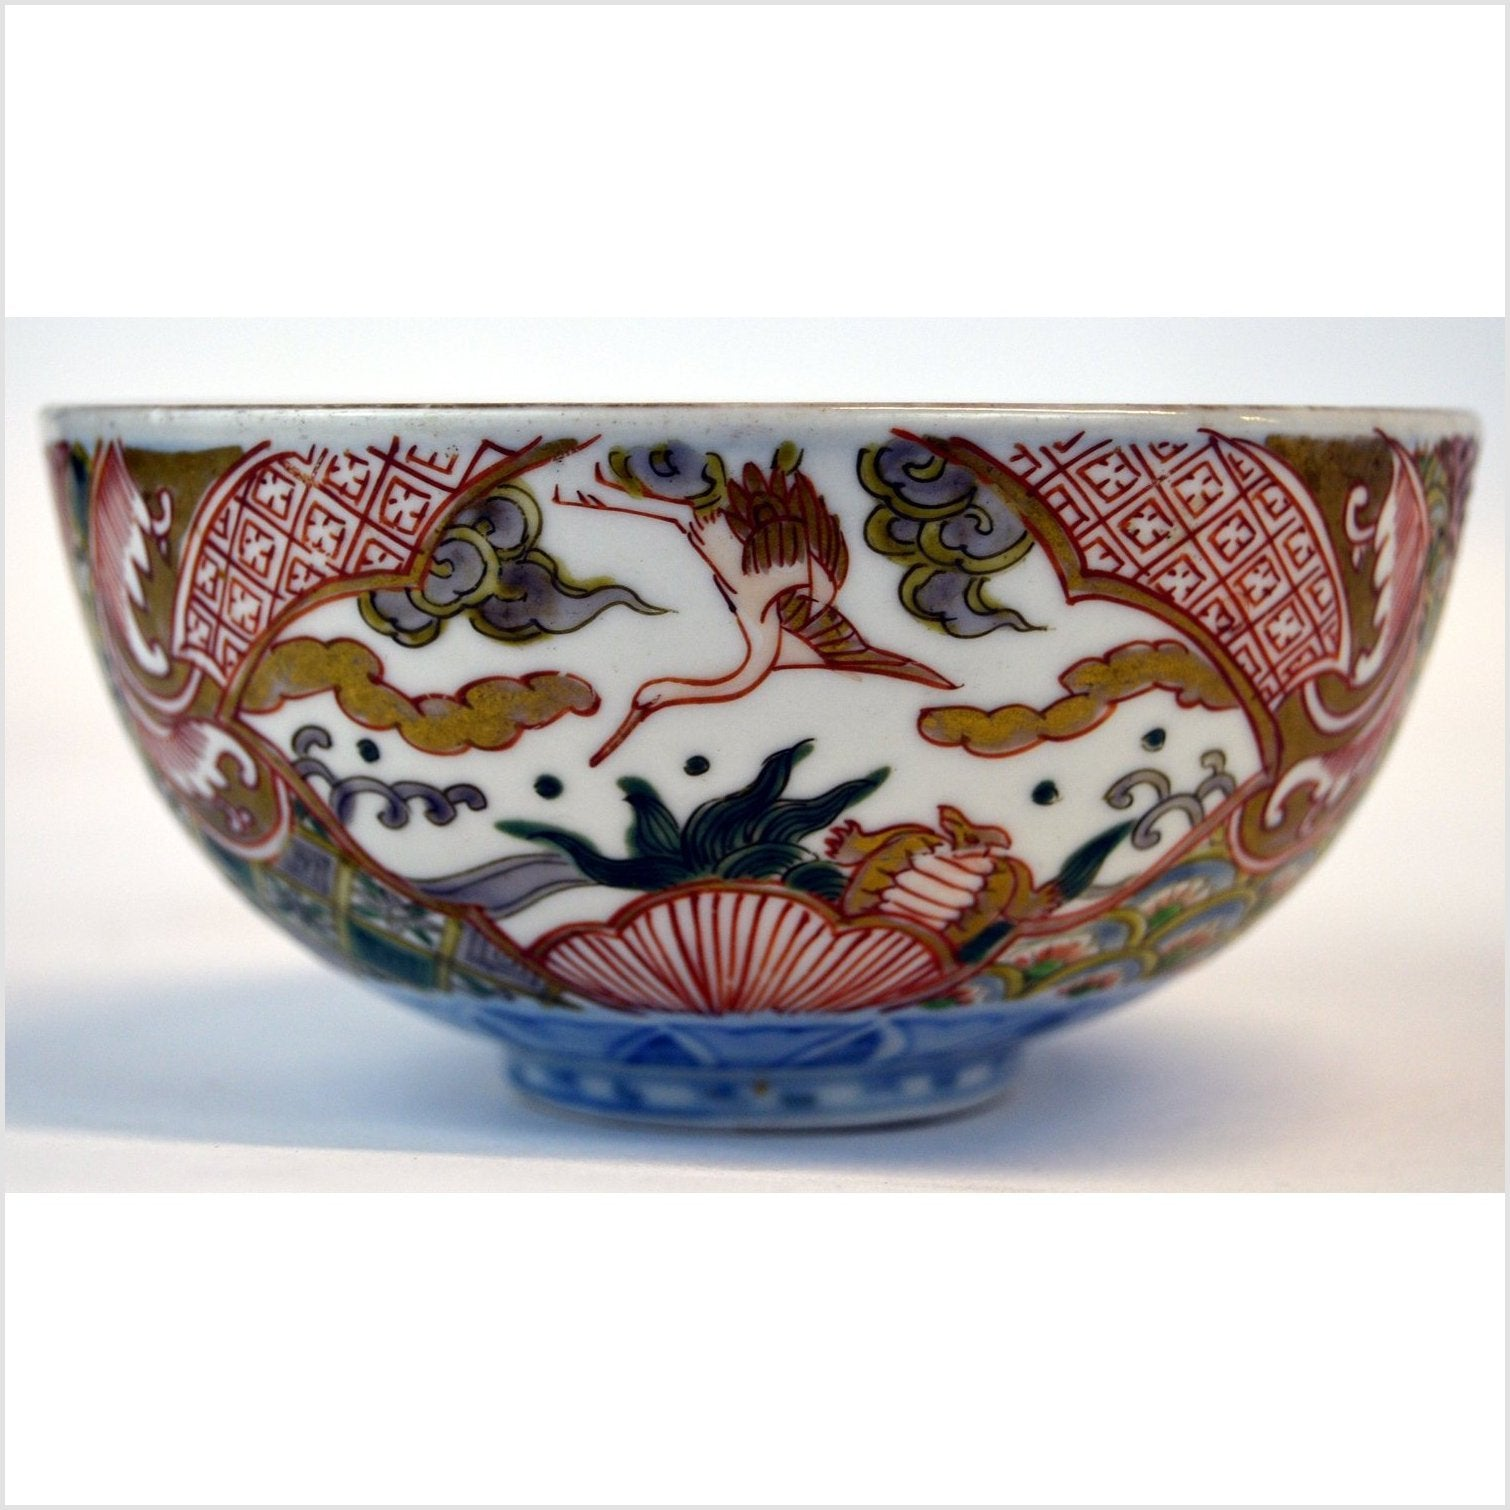 Japanese Multicolor Imari Meiji Porcelain Bowl